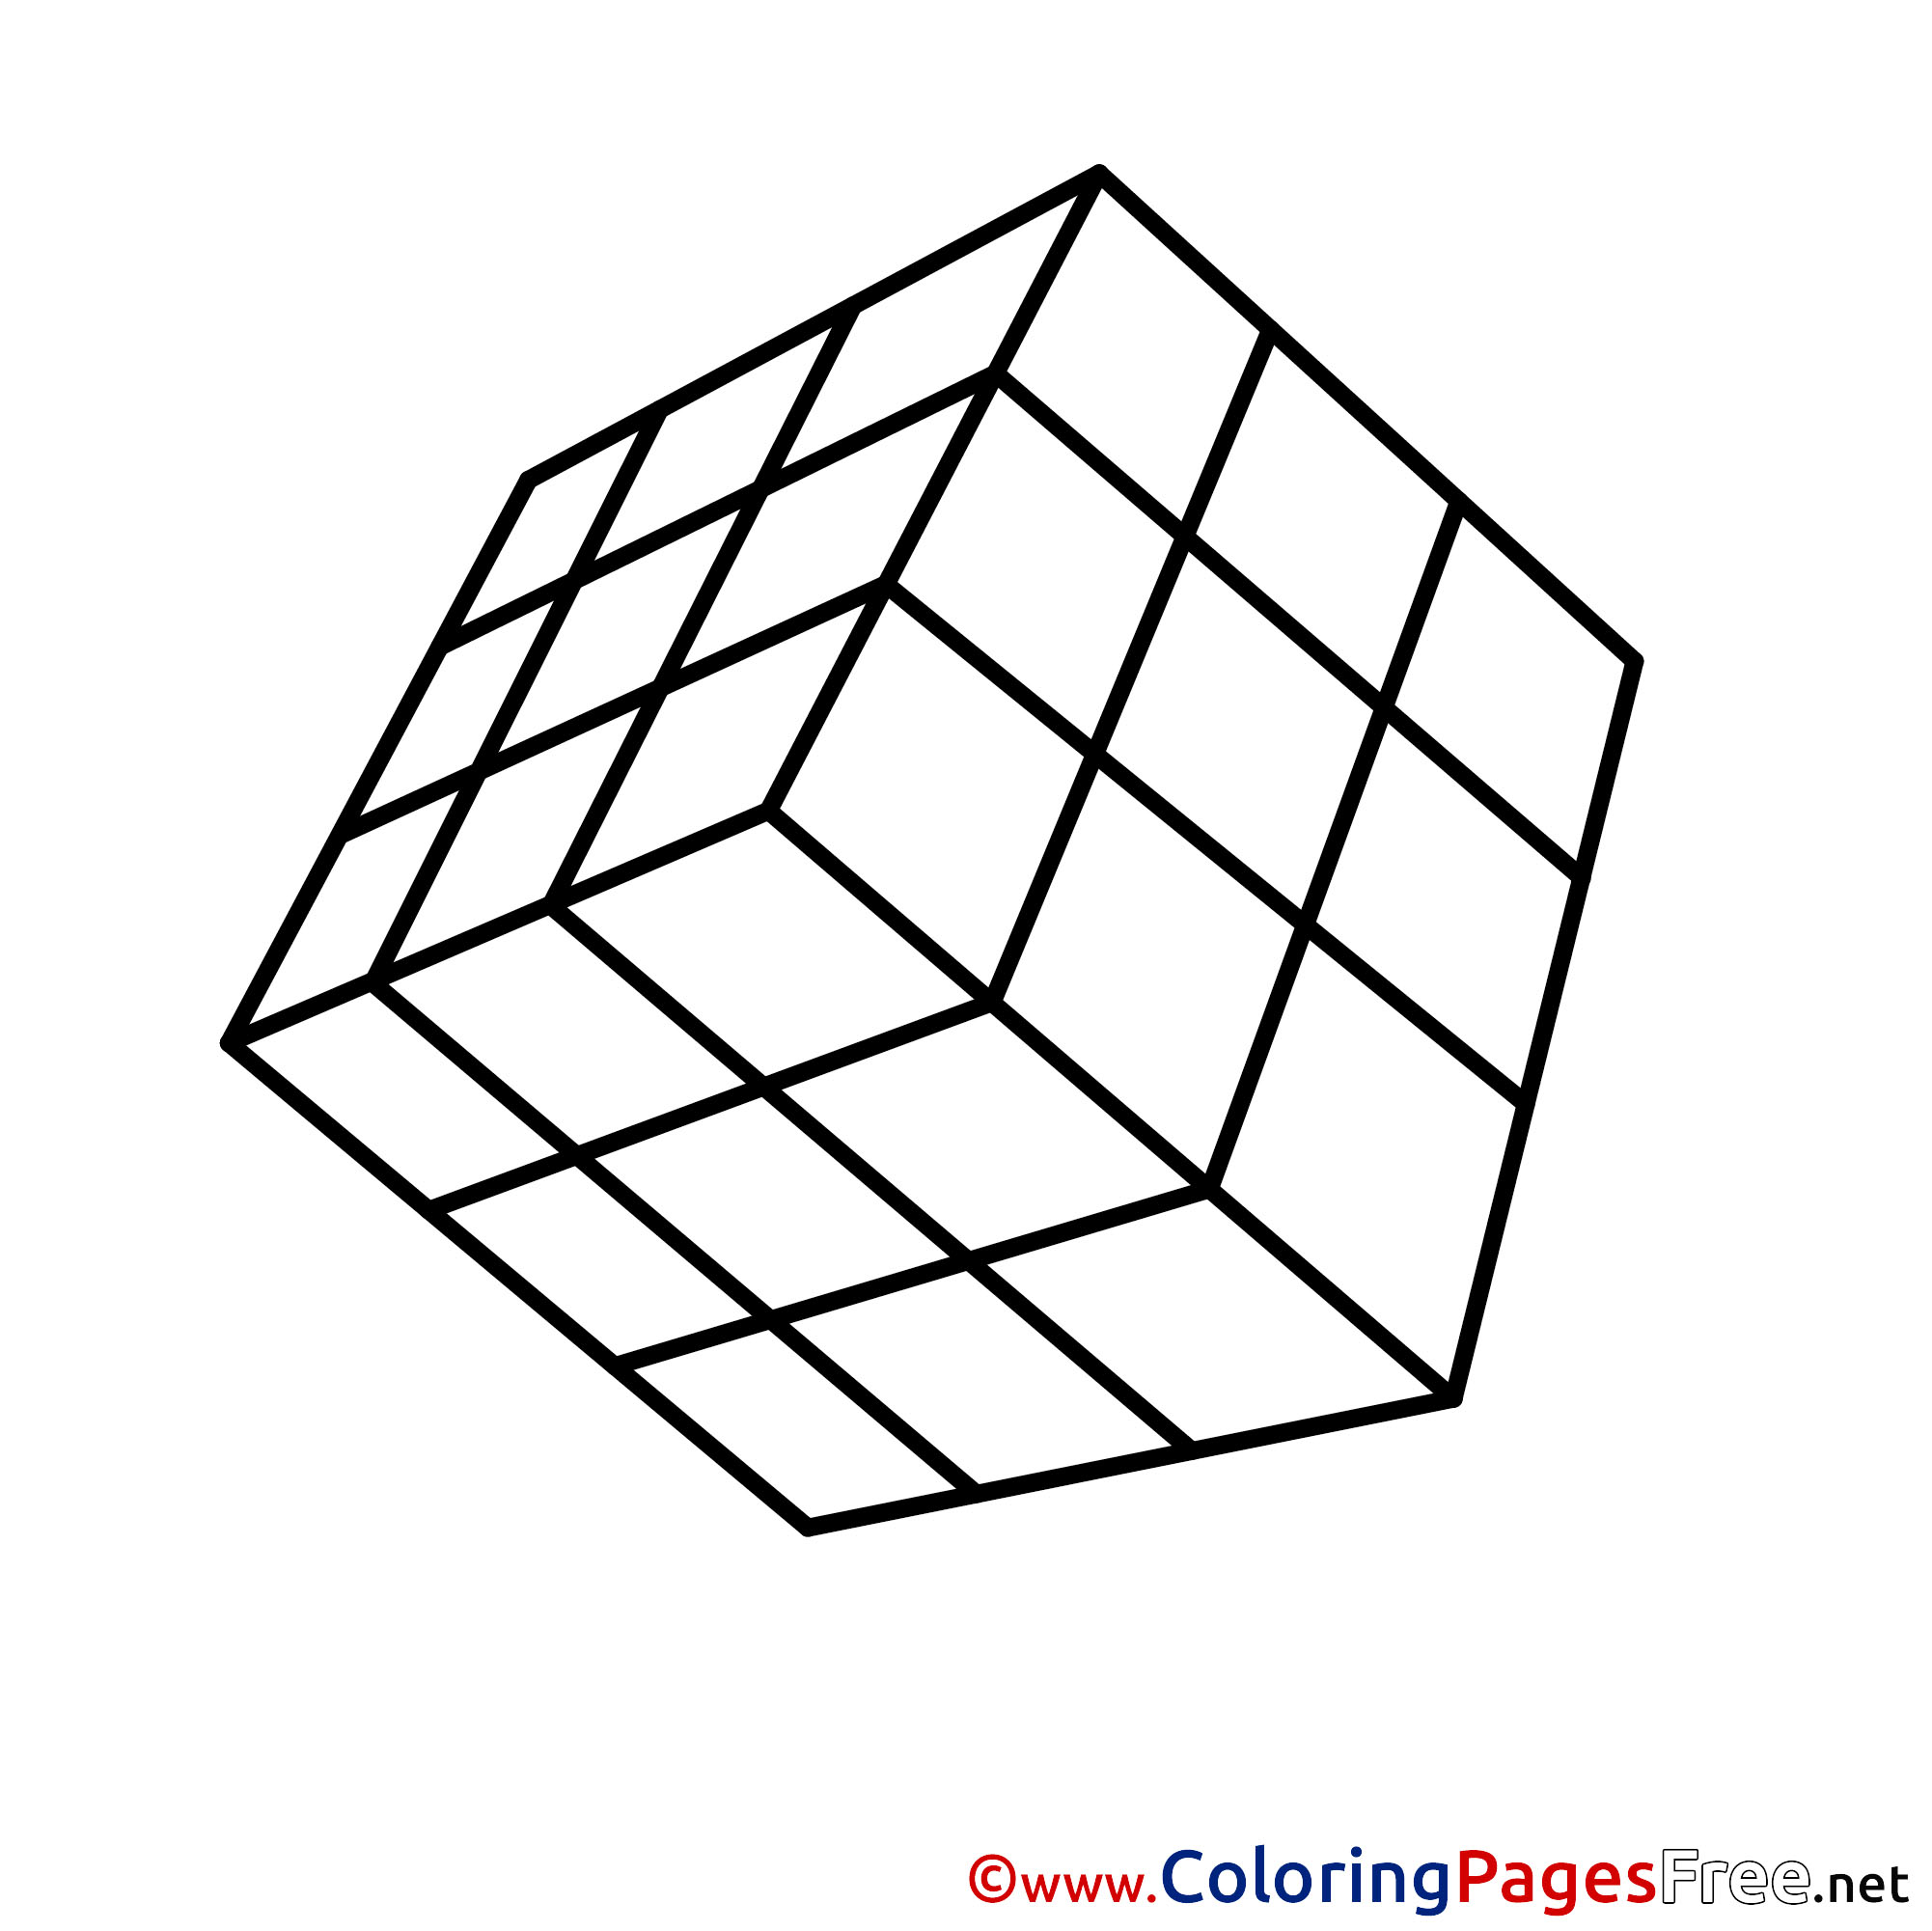 Cube Coloring Pages